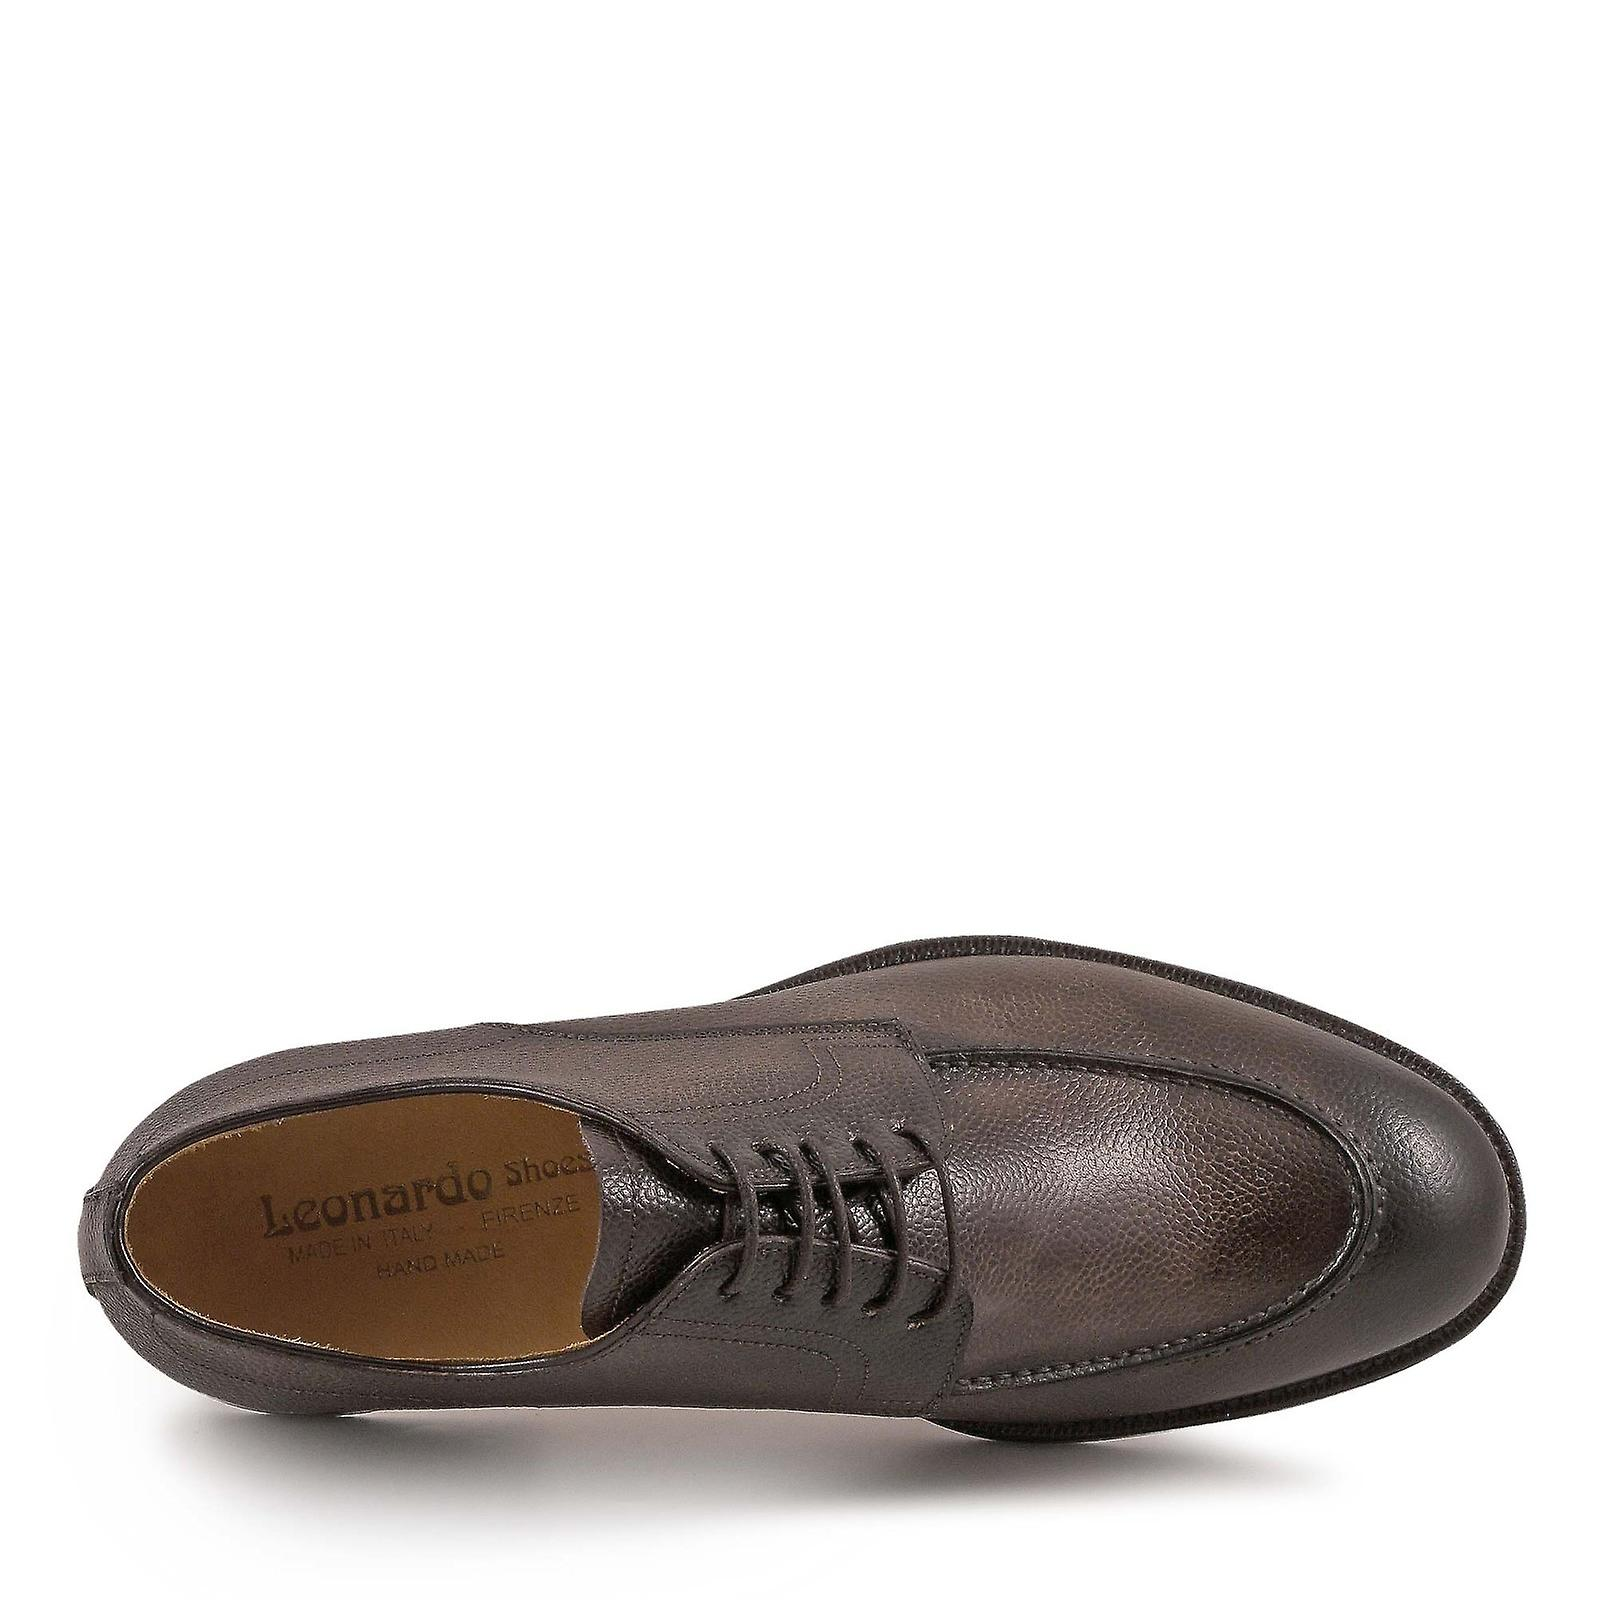 Handmade chocolate leather derby derby derby shoes for men 6bff8d